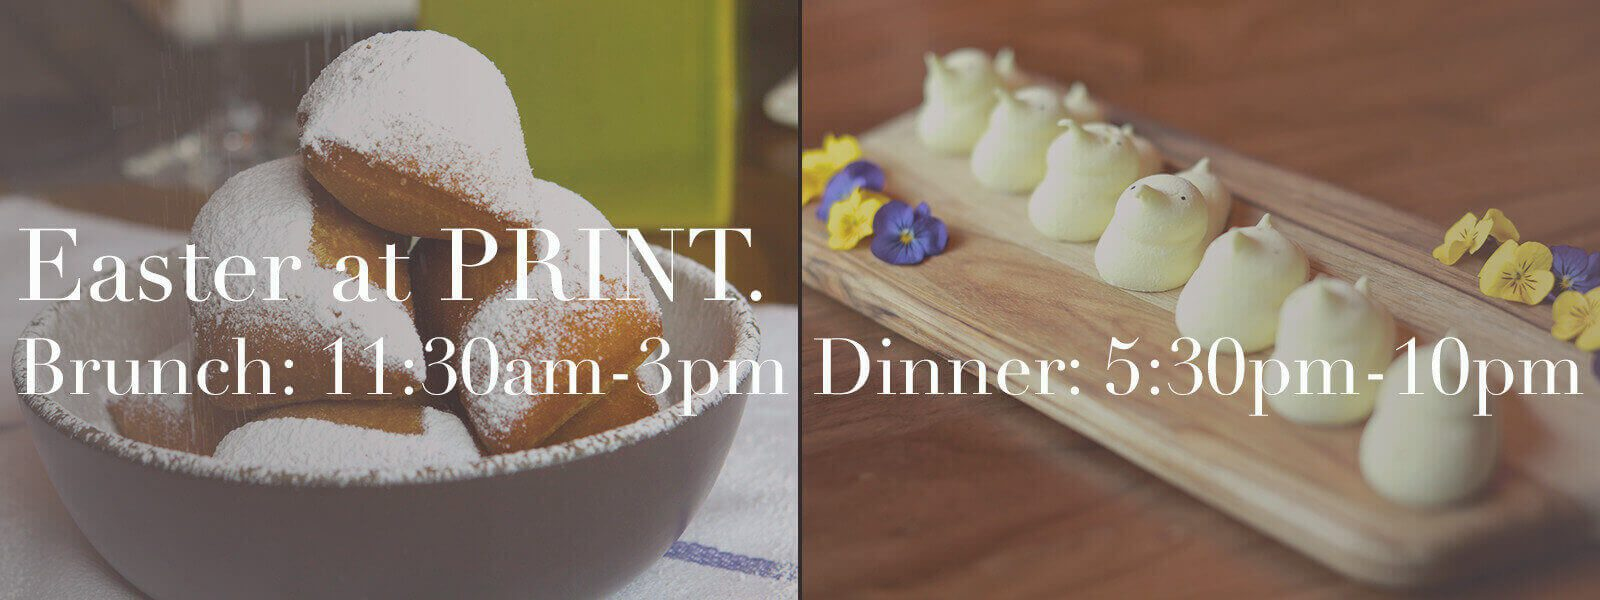 """Beignets and marshmallow peeps with text """"Easter at PRINT. Brunch: 11:30am-3pm. Dinner 5:30pm-10pm."""""""